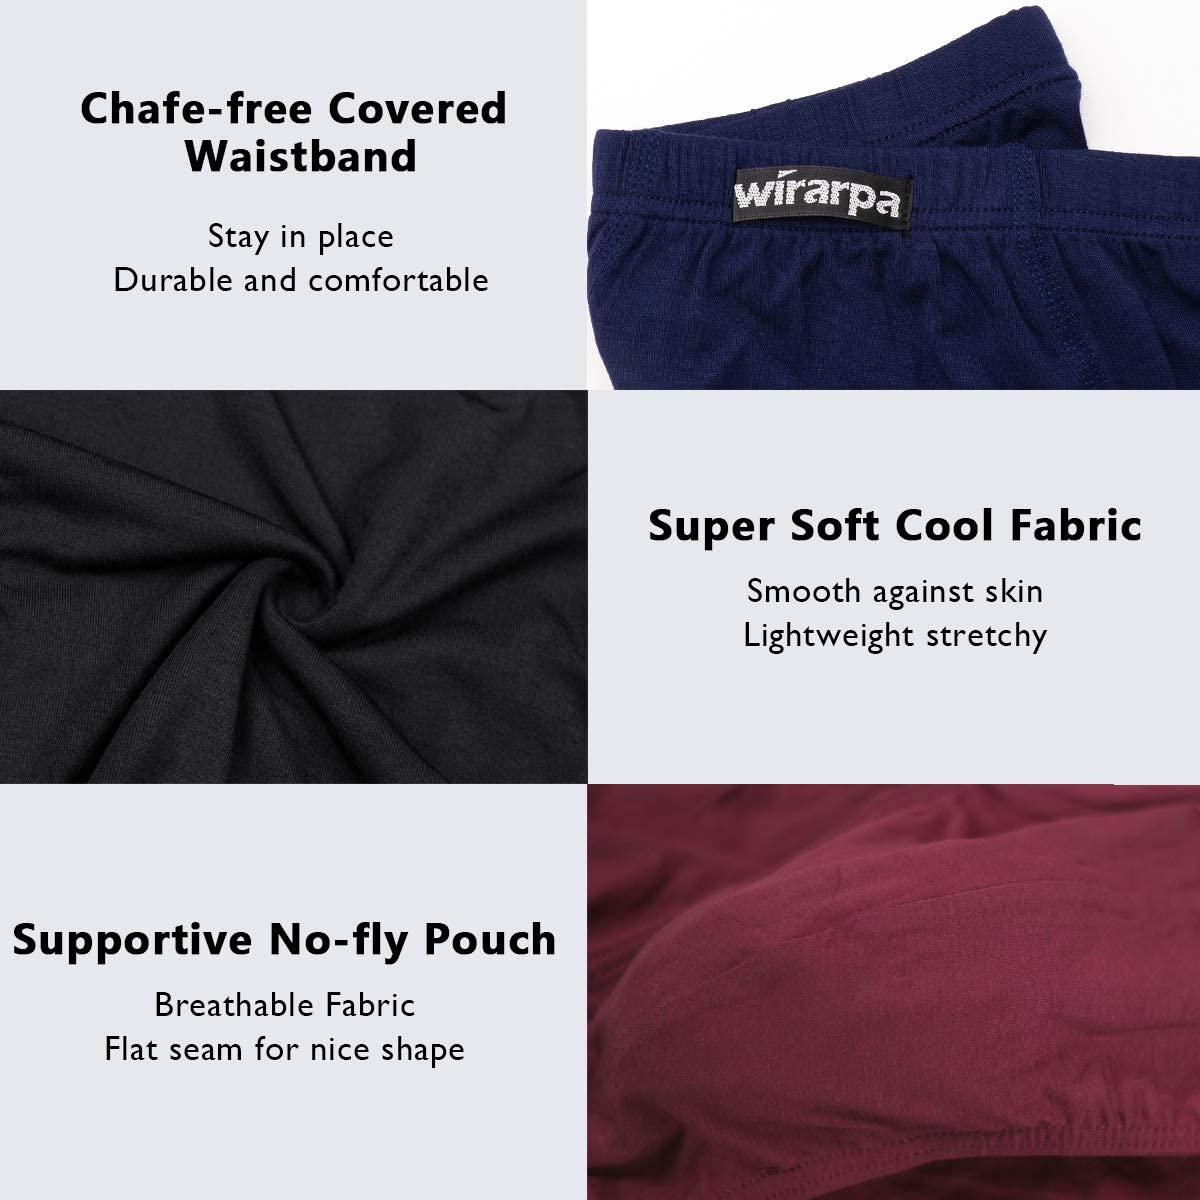 wirarpa Mens Modal Briefs Underwear Soft Microfibre Underpants No Front Silky Touch Slips Covered Waistband Multipack